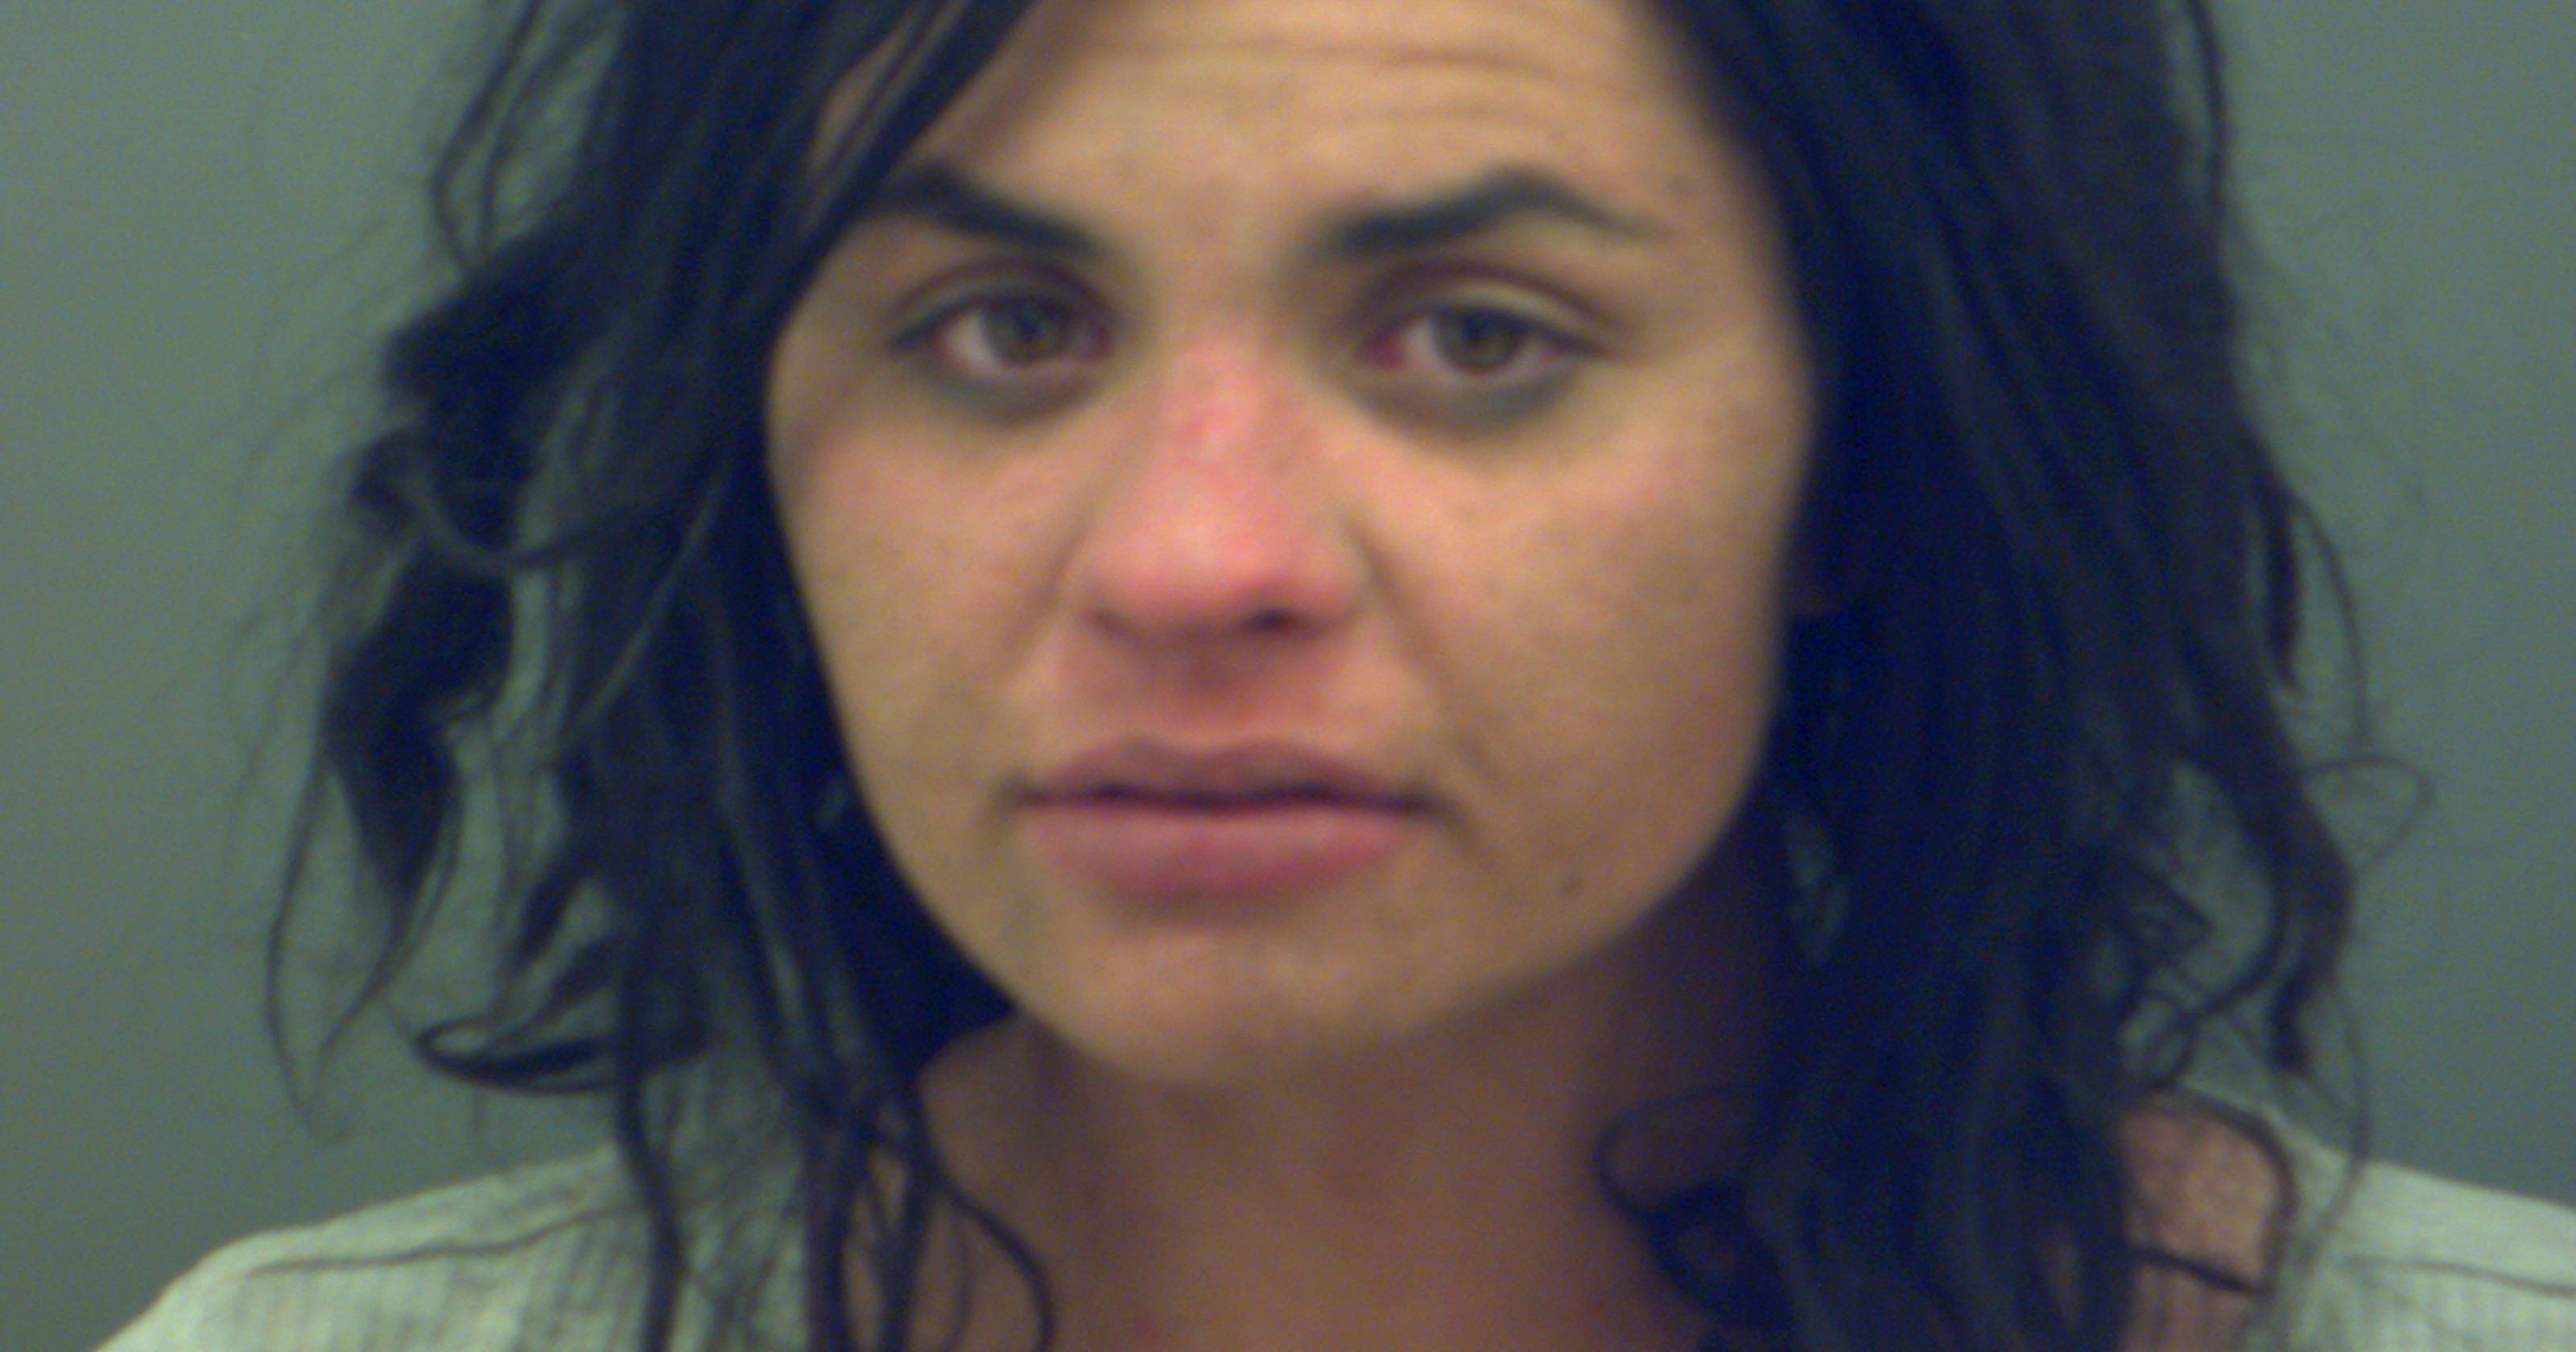 Hailey Aboud, featured on El Paso's most wanted list, is arrested